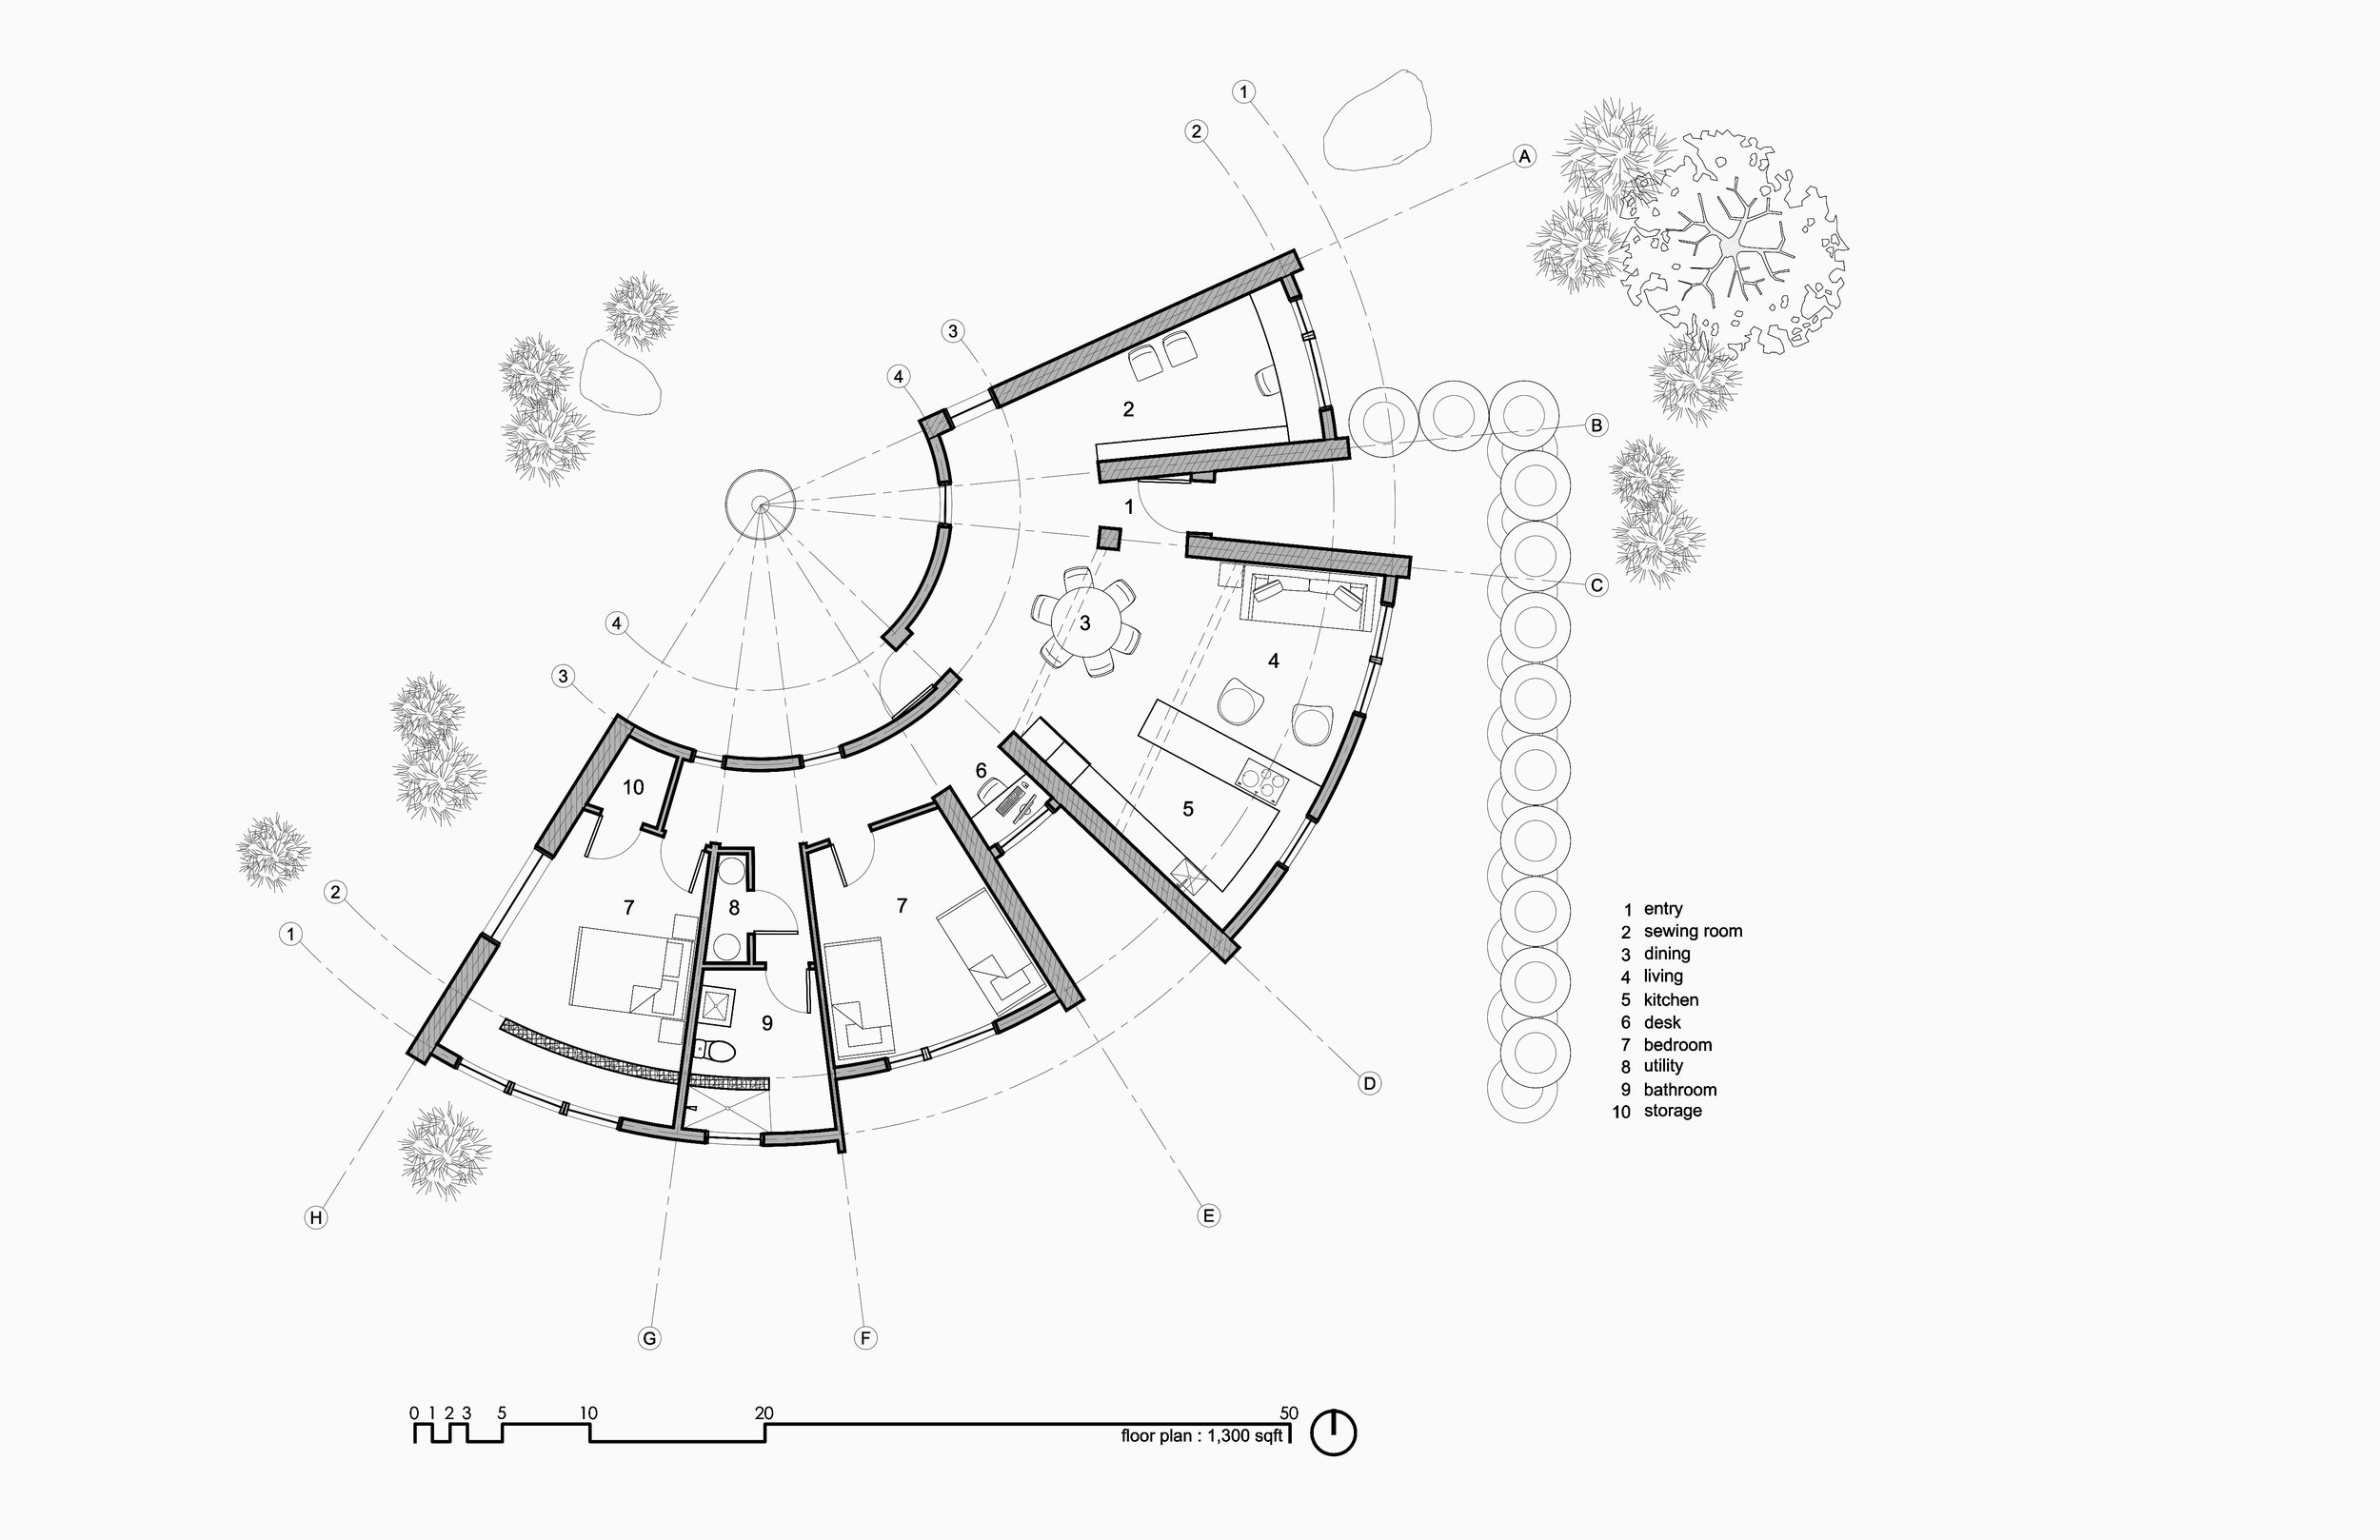 technical construction document floor plan for the construction of a modern mountain home in Arizona